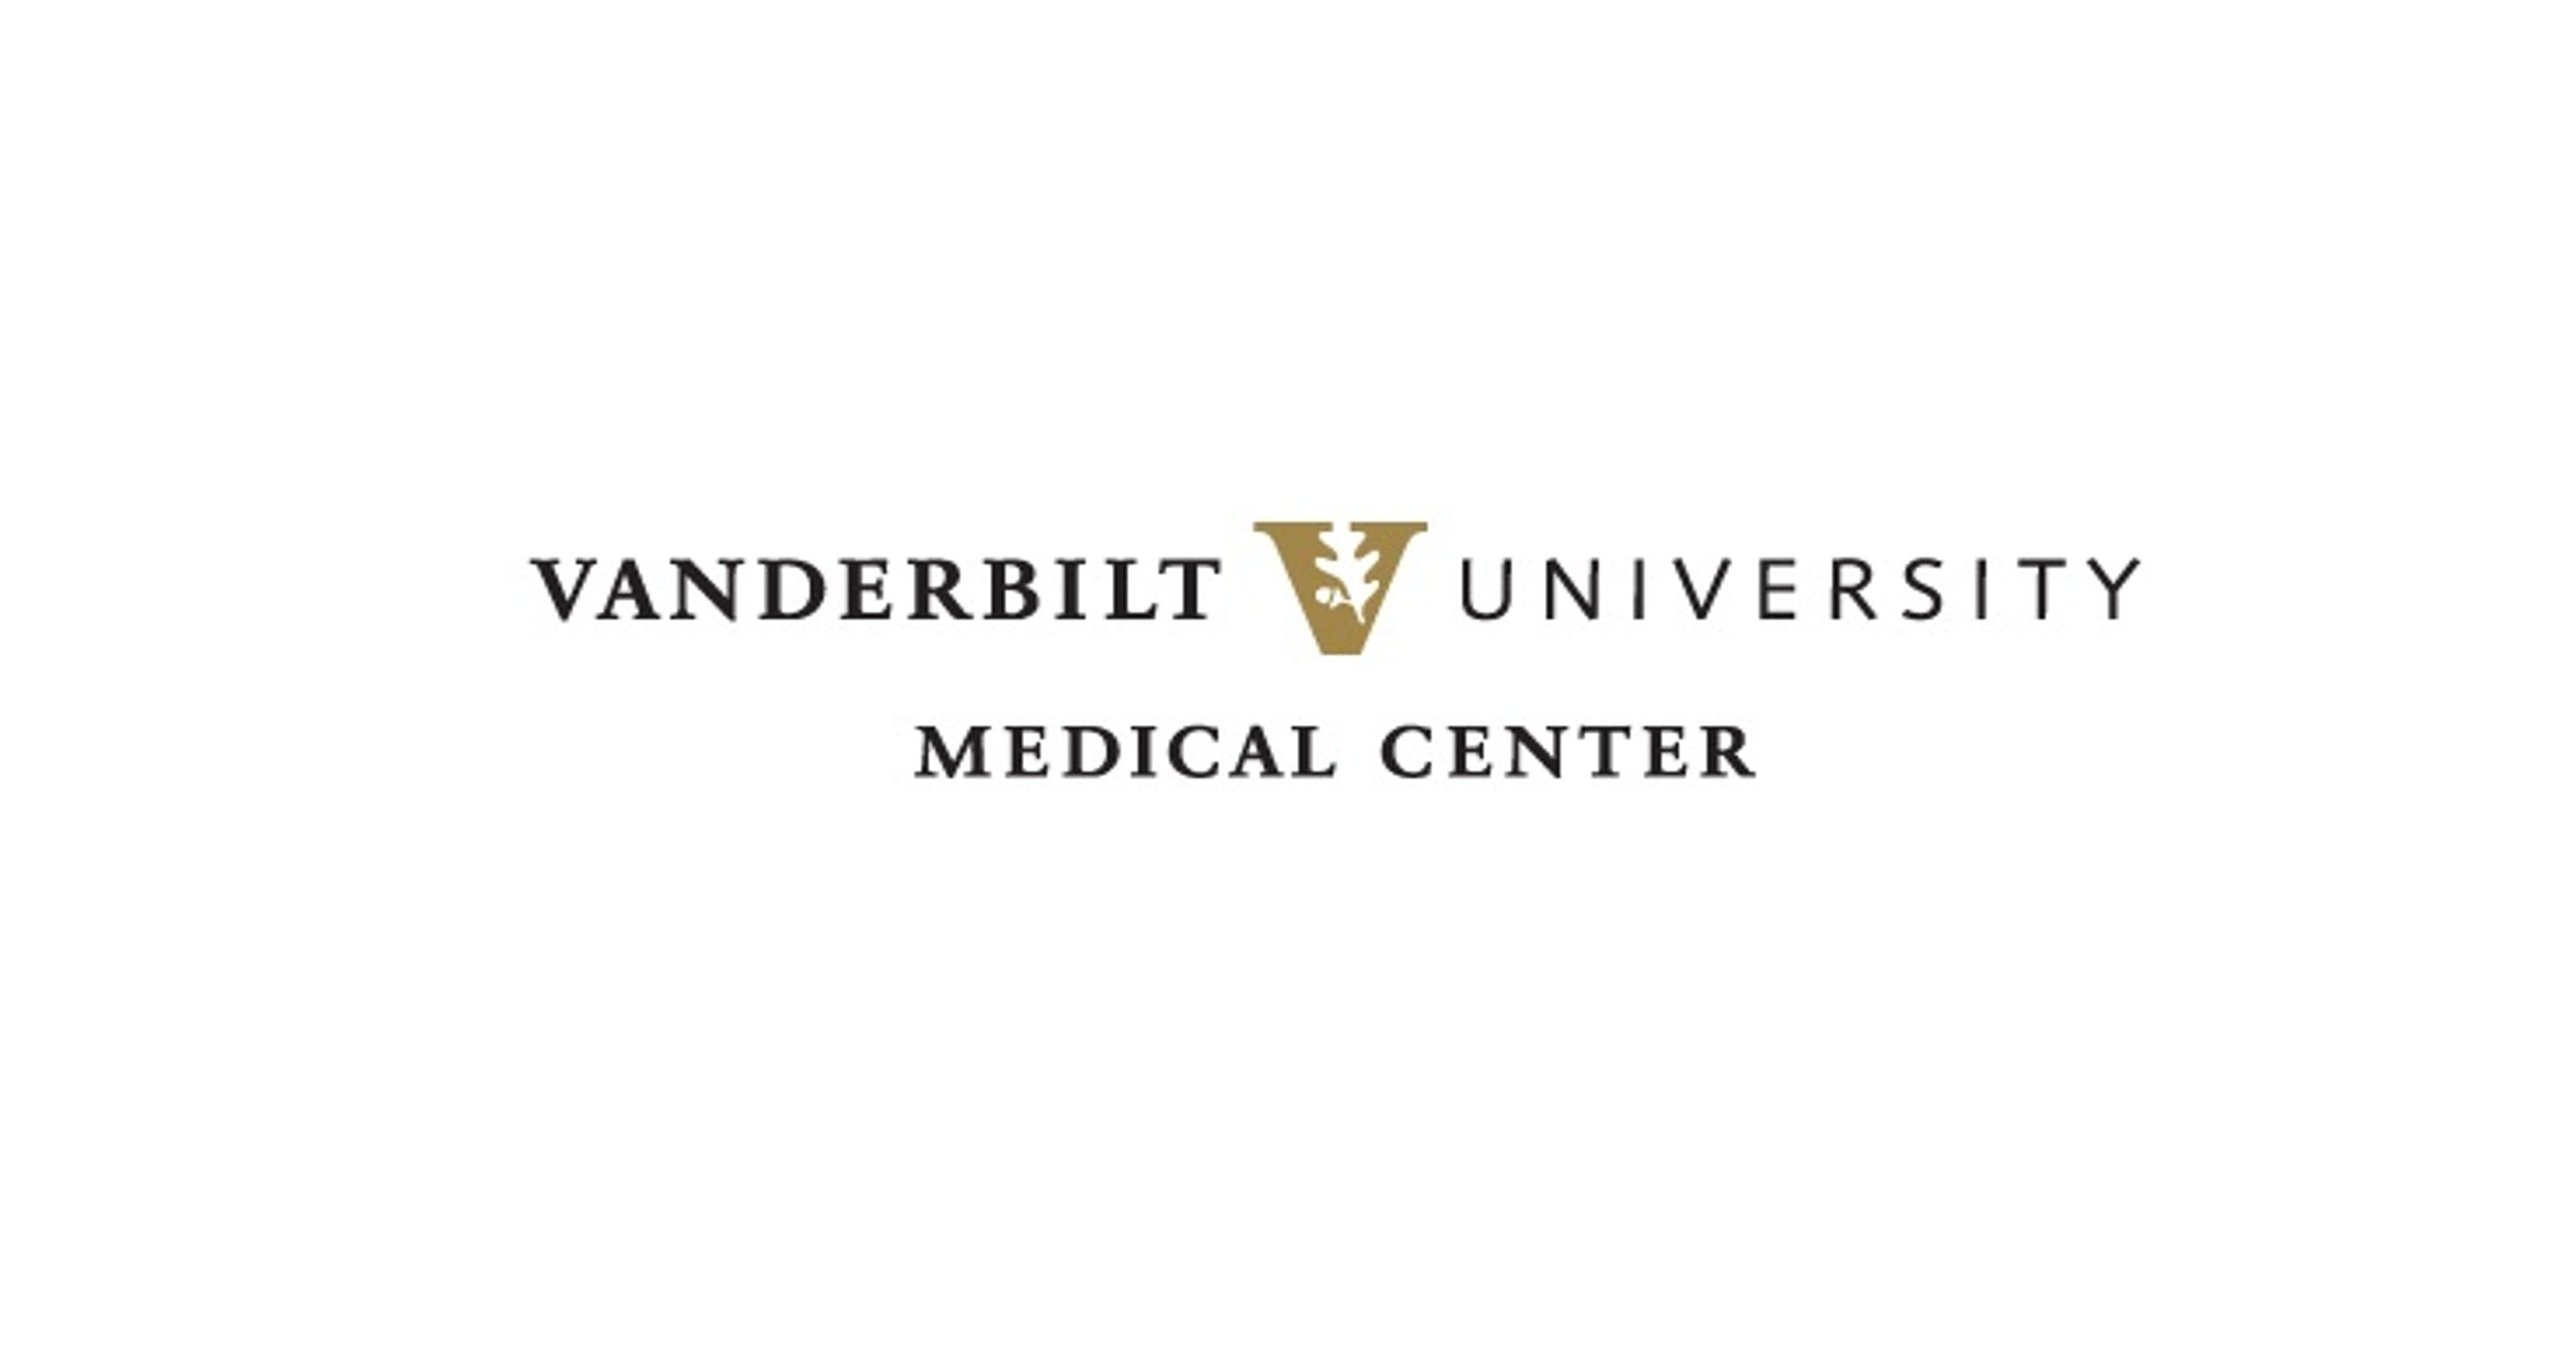 Vanderbilt hospital employees breached patient records